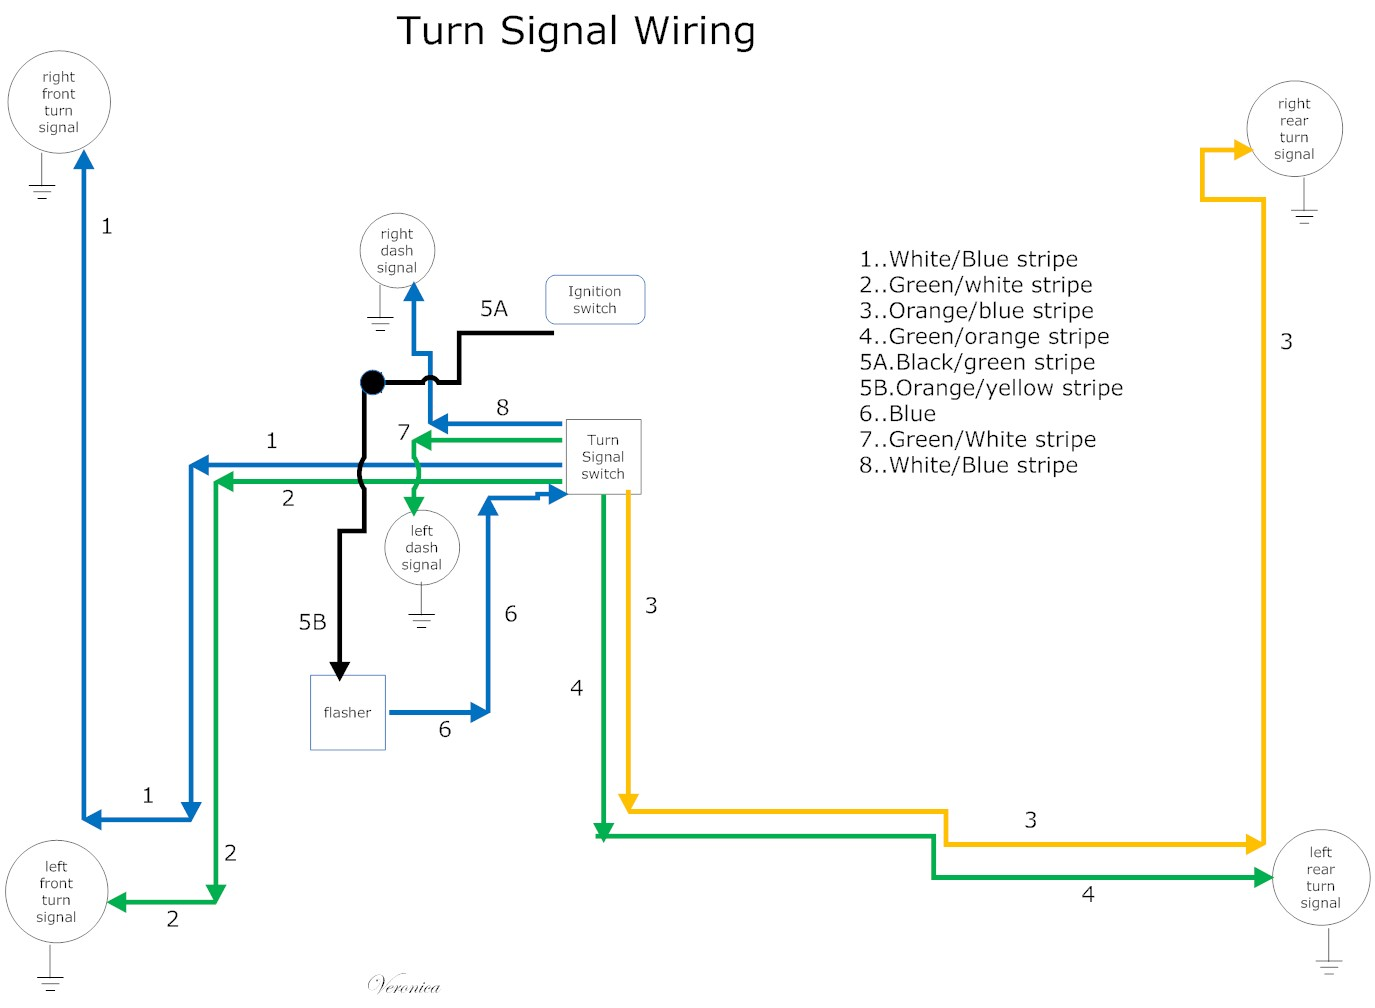 Turn+signal+Wiring the care and feeding of ponies 1965 1966 mustang turn signal 93 mustang turn signal wiring diagram at love-stories.co